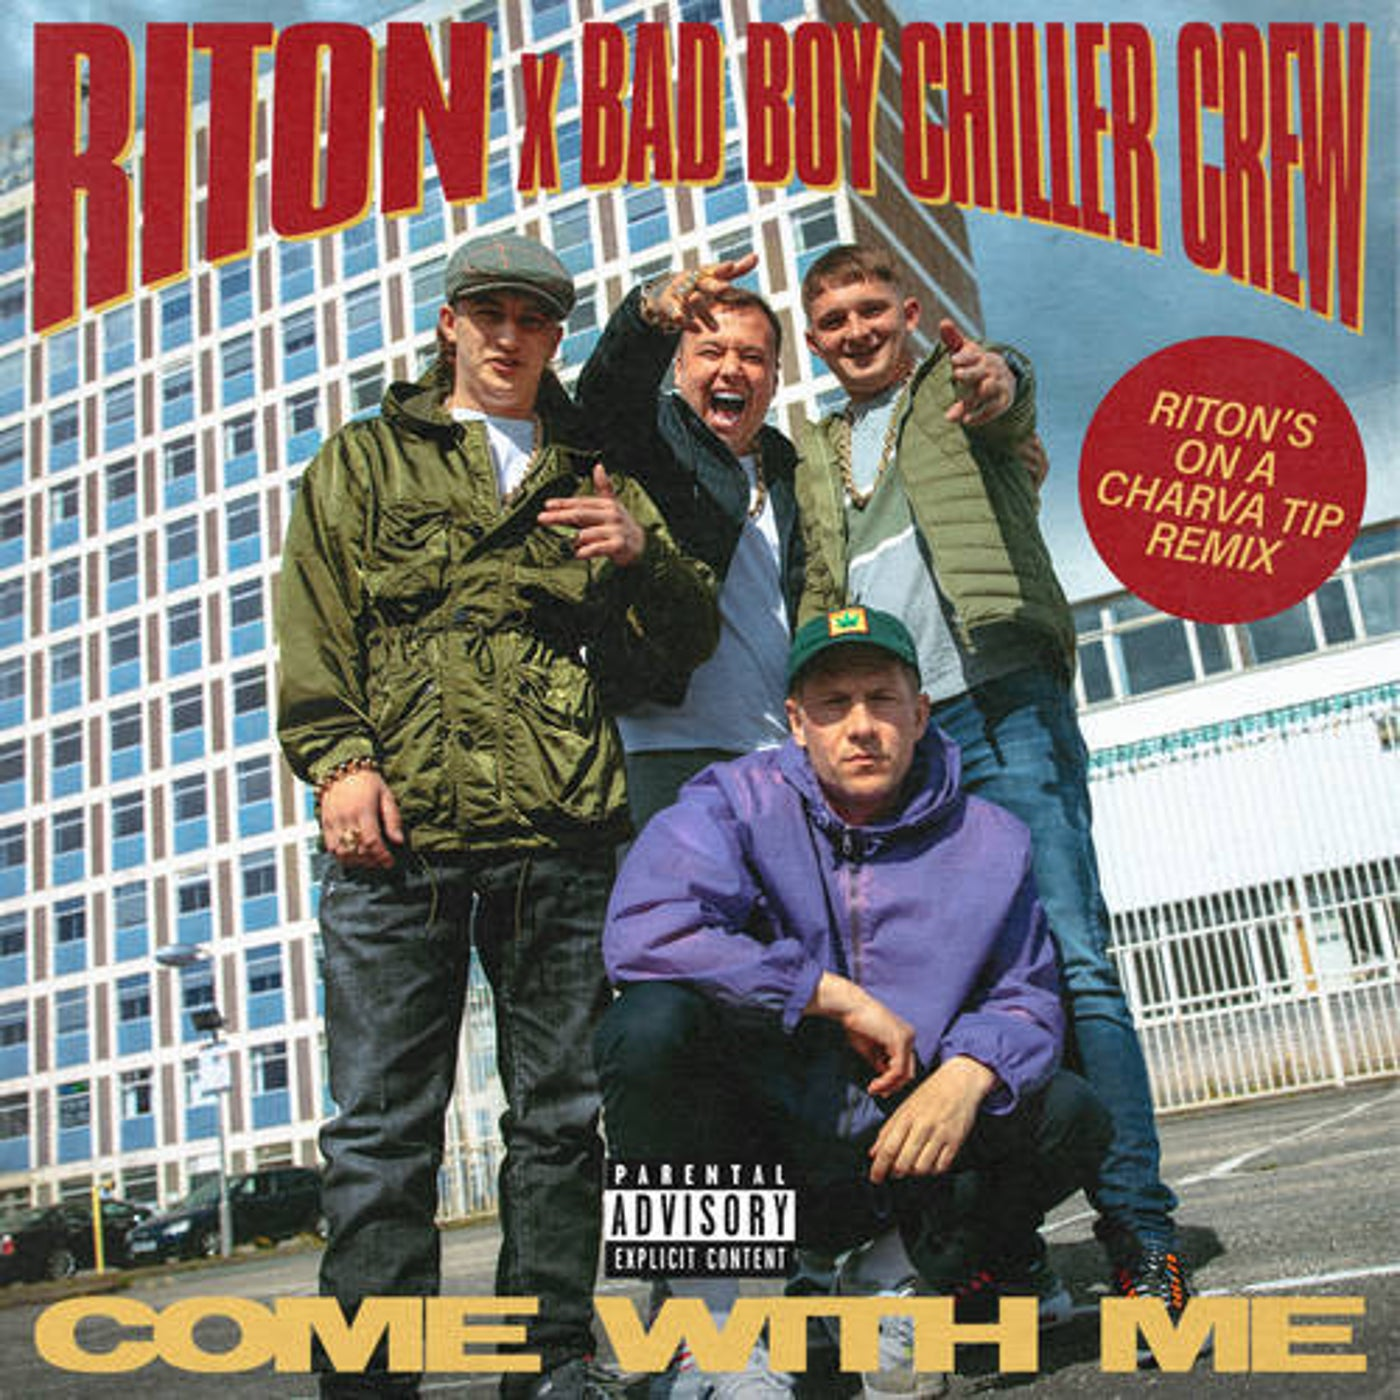 Come With Me (Riton's On a Charva Tip Club Mix)